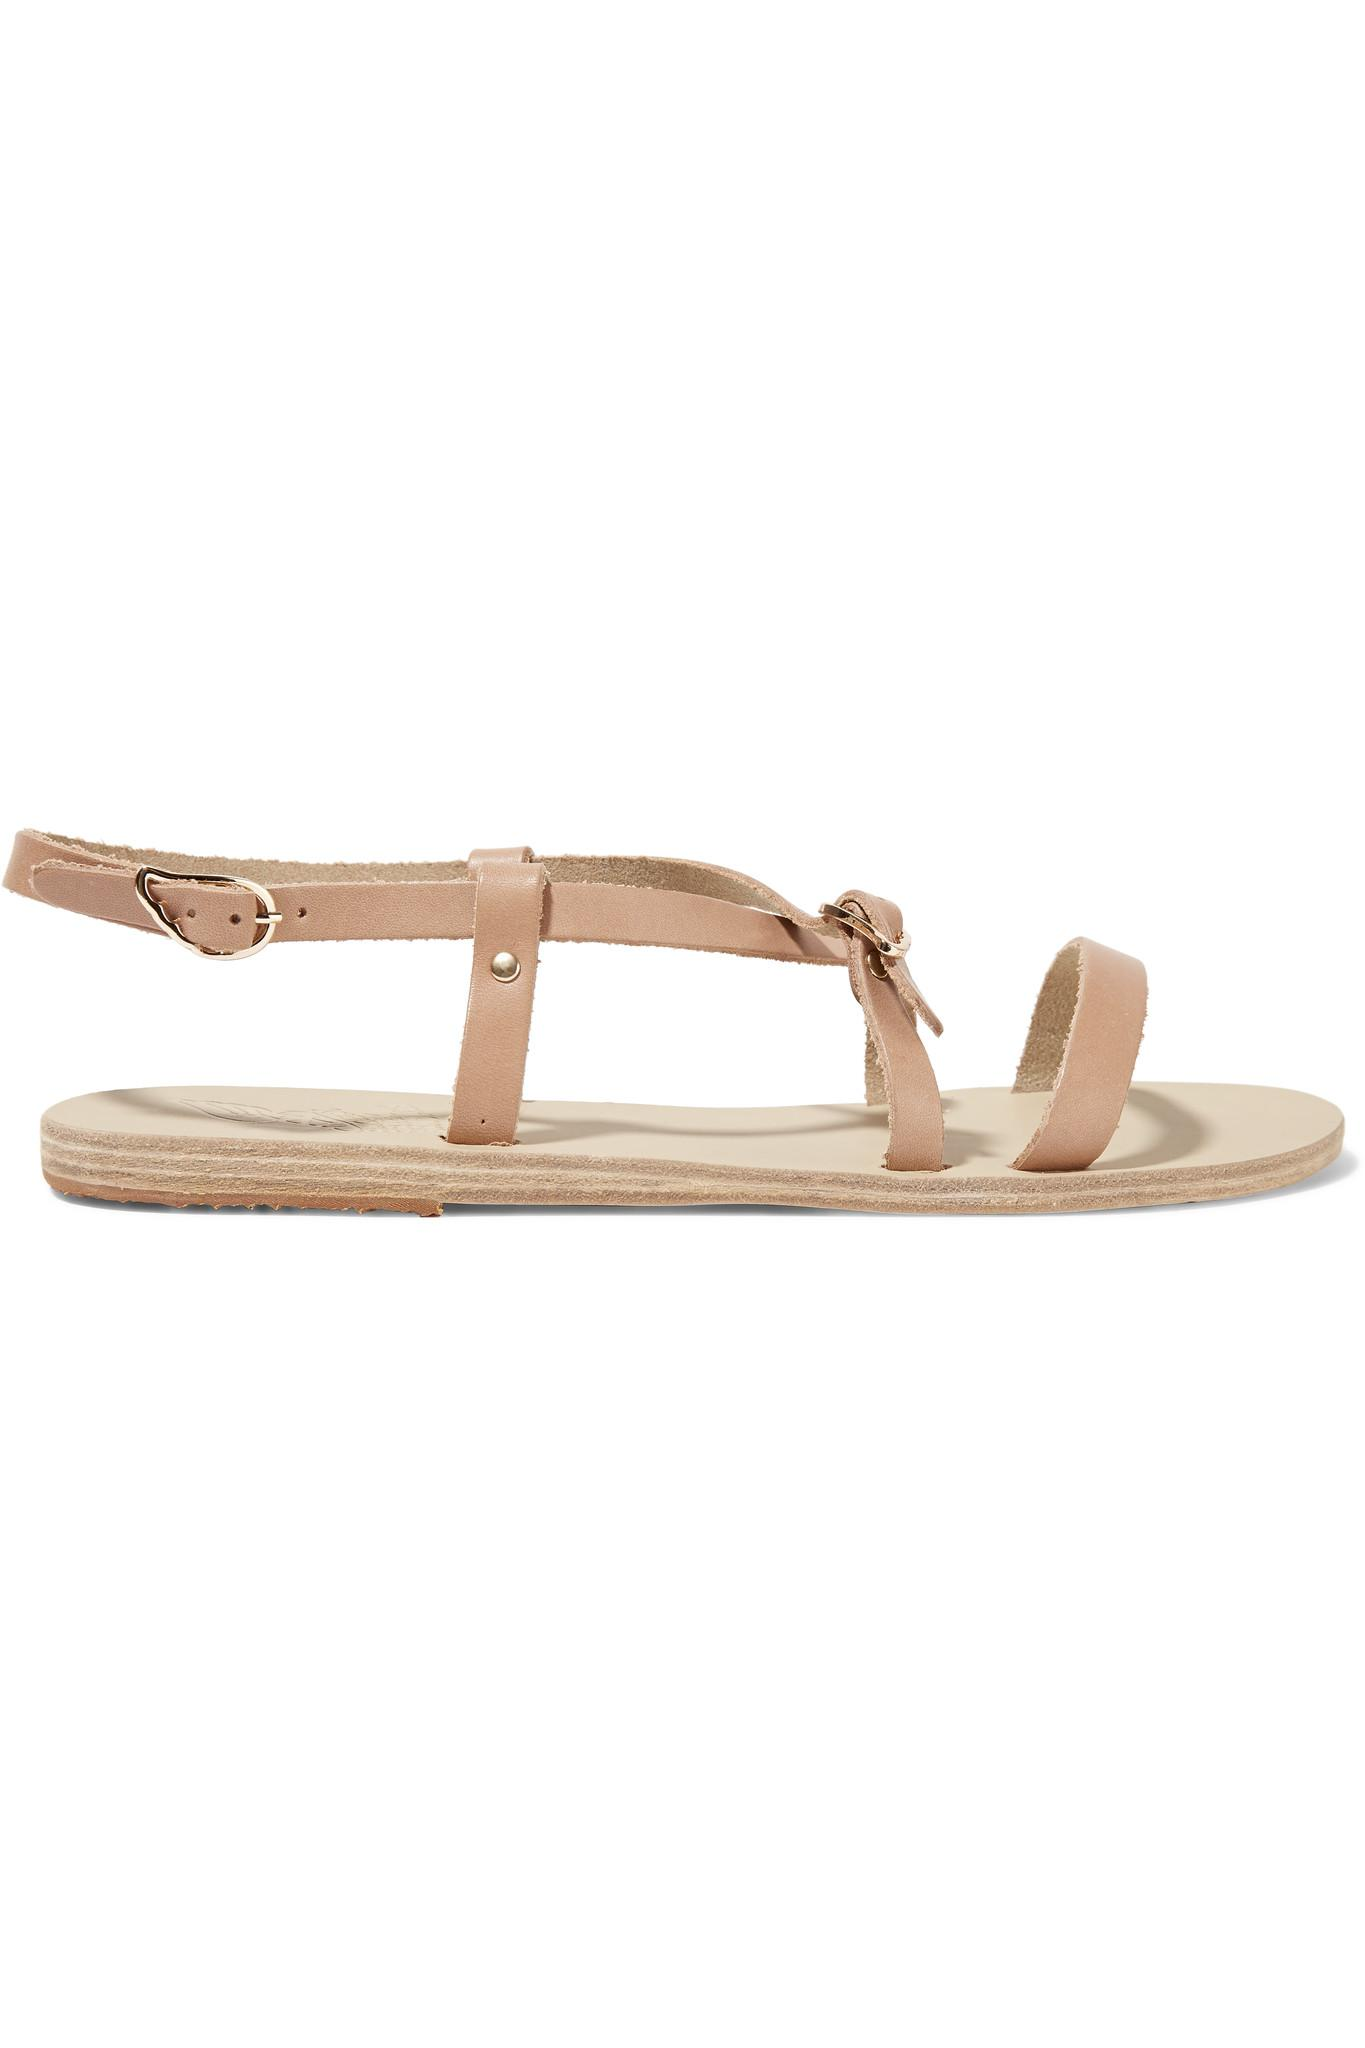 70a87c6cc34 Lyst - Ancient Greek Sandals Sofia Leather Sandals in Natural